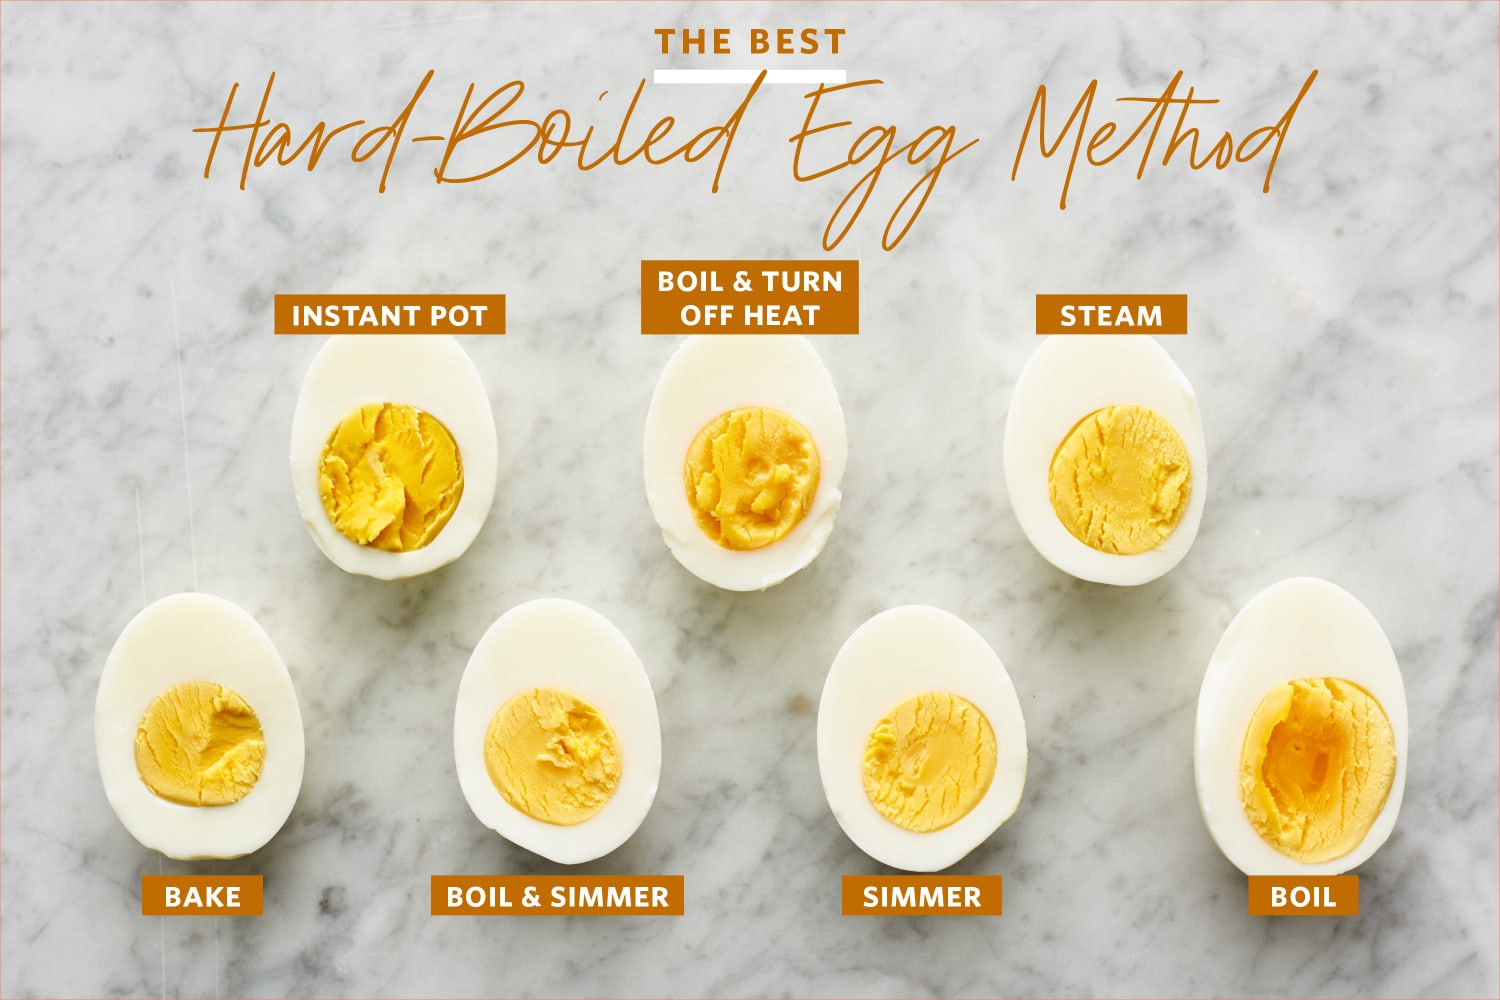 We Tried 7 Ways to Hard-Boil Eggs and Found a Clear Winner